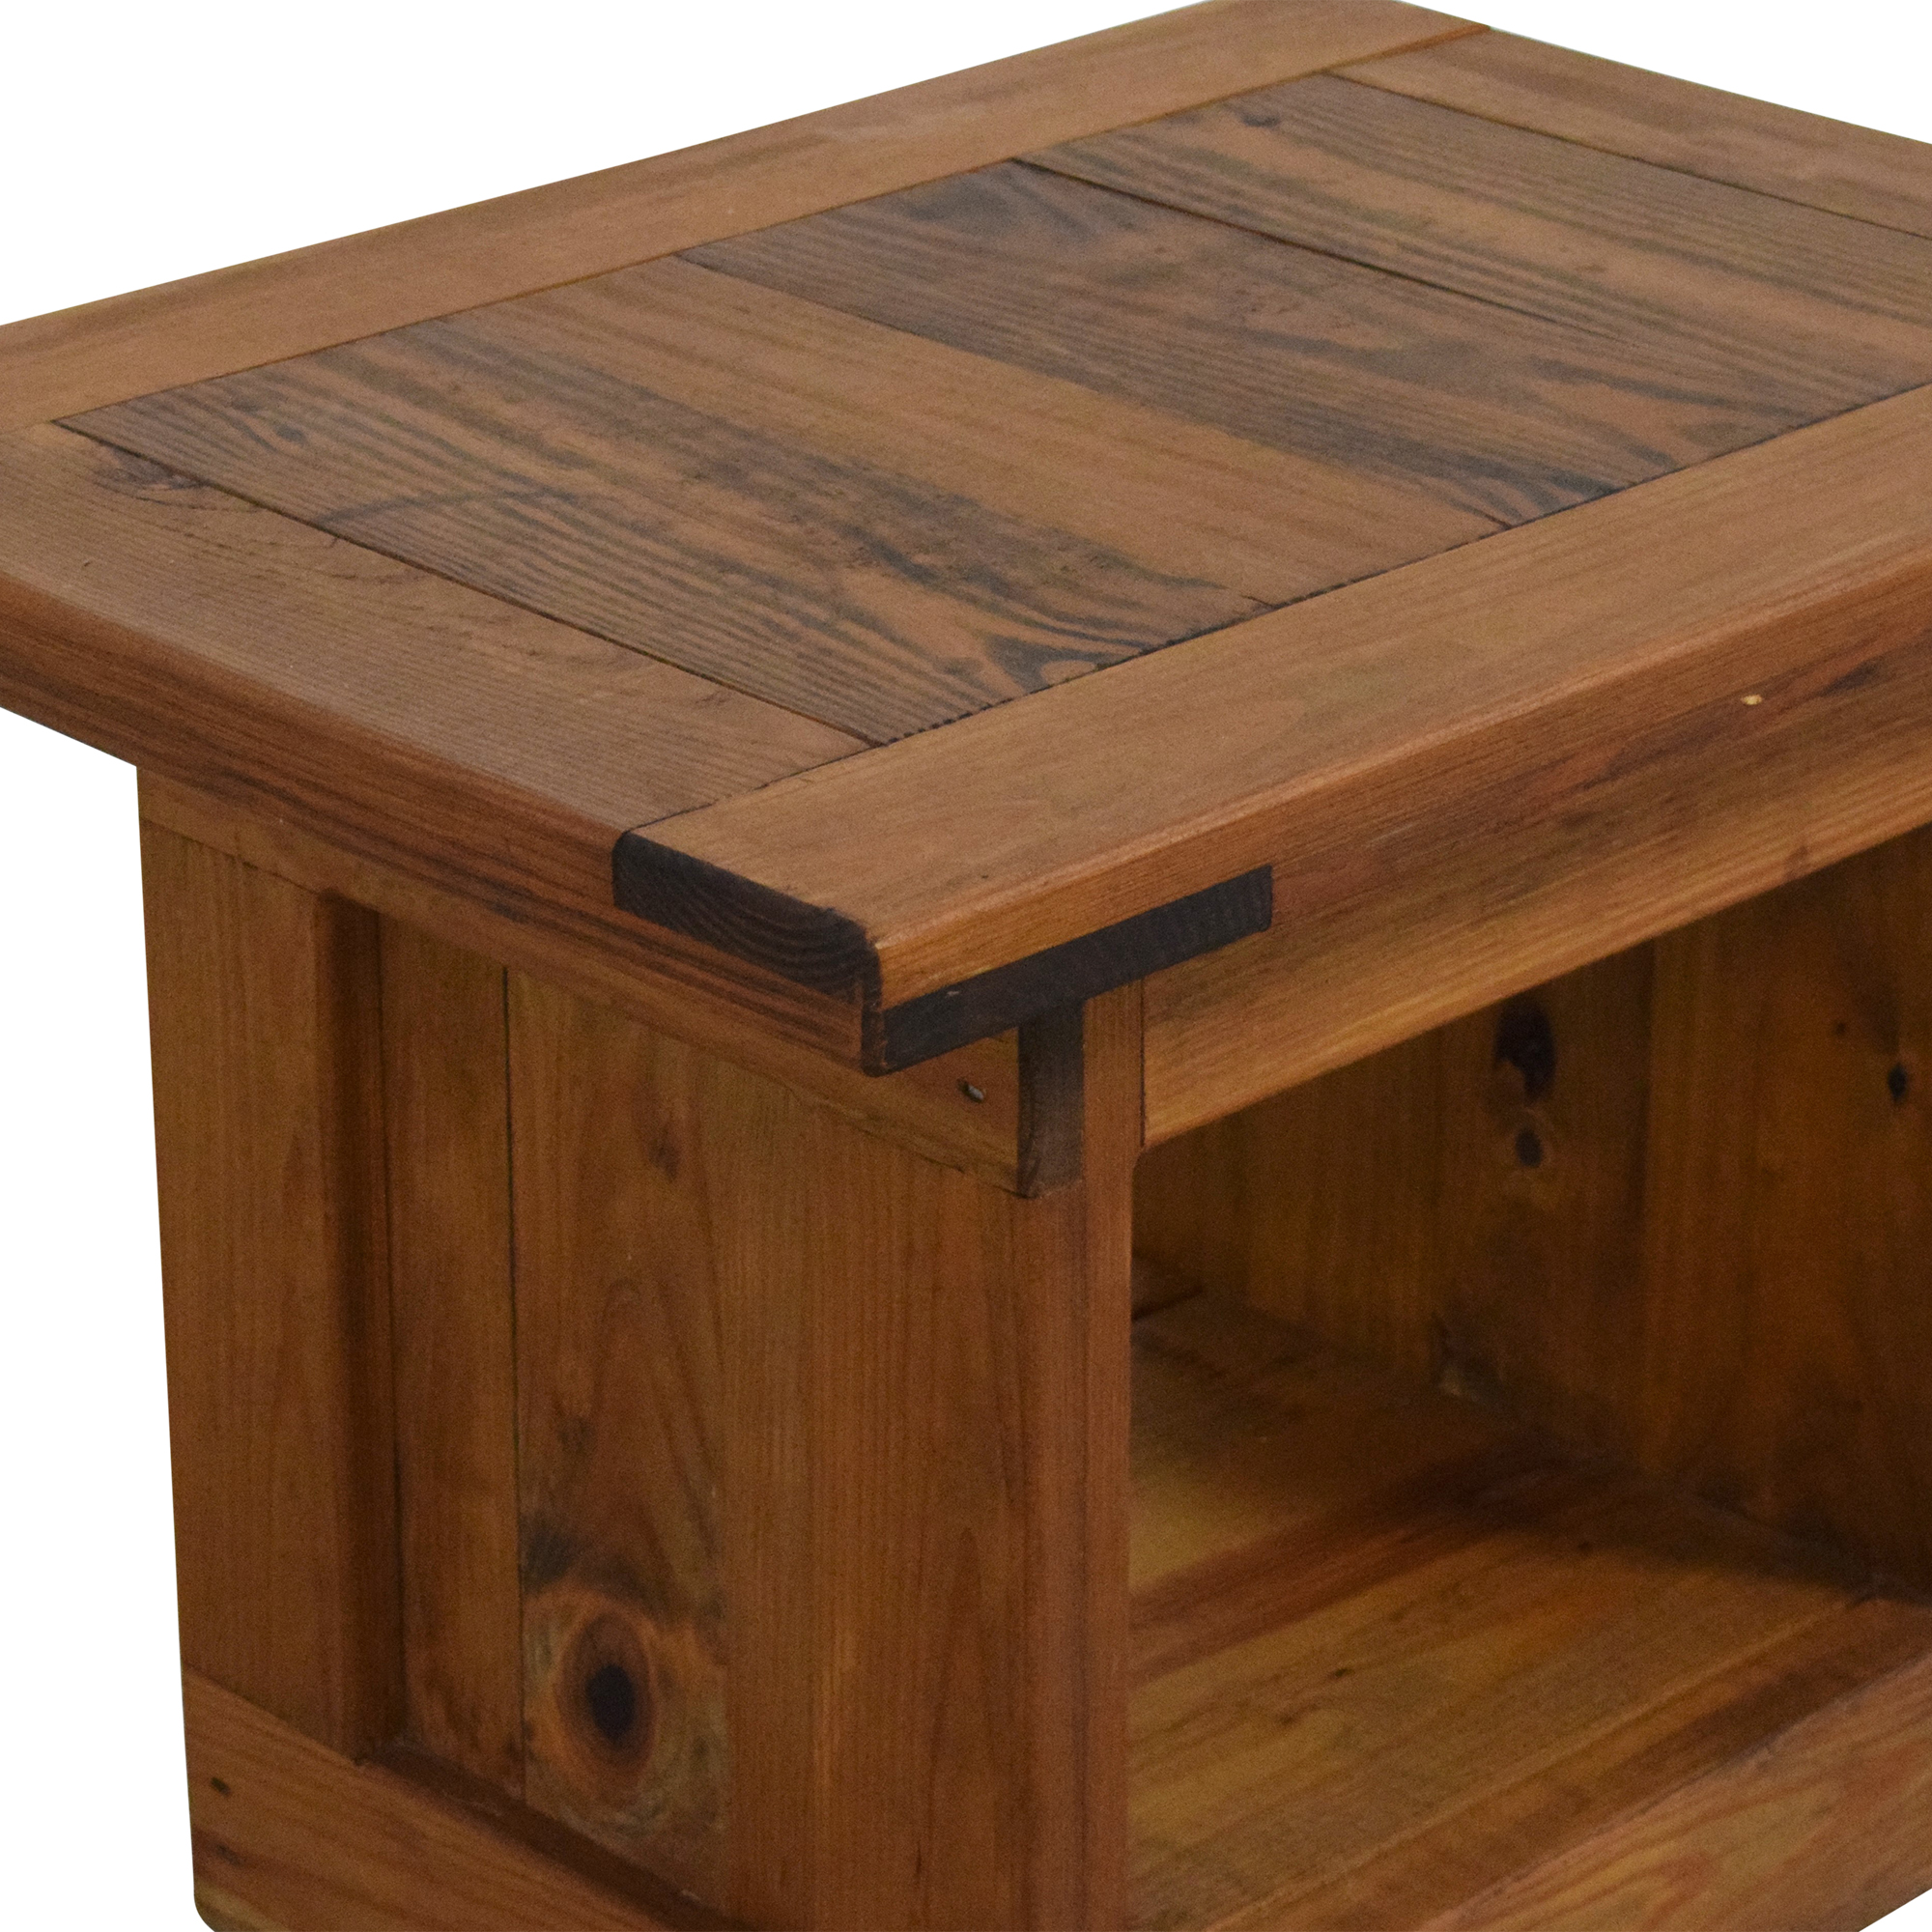 buy This End Up Classic End table This End Up Tables